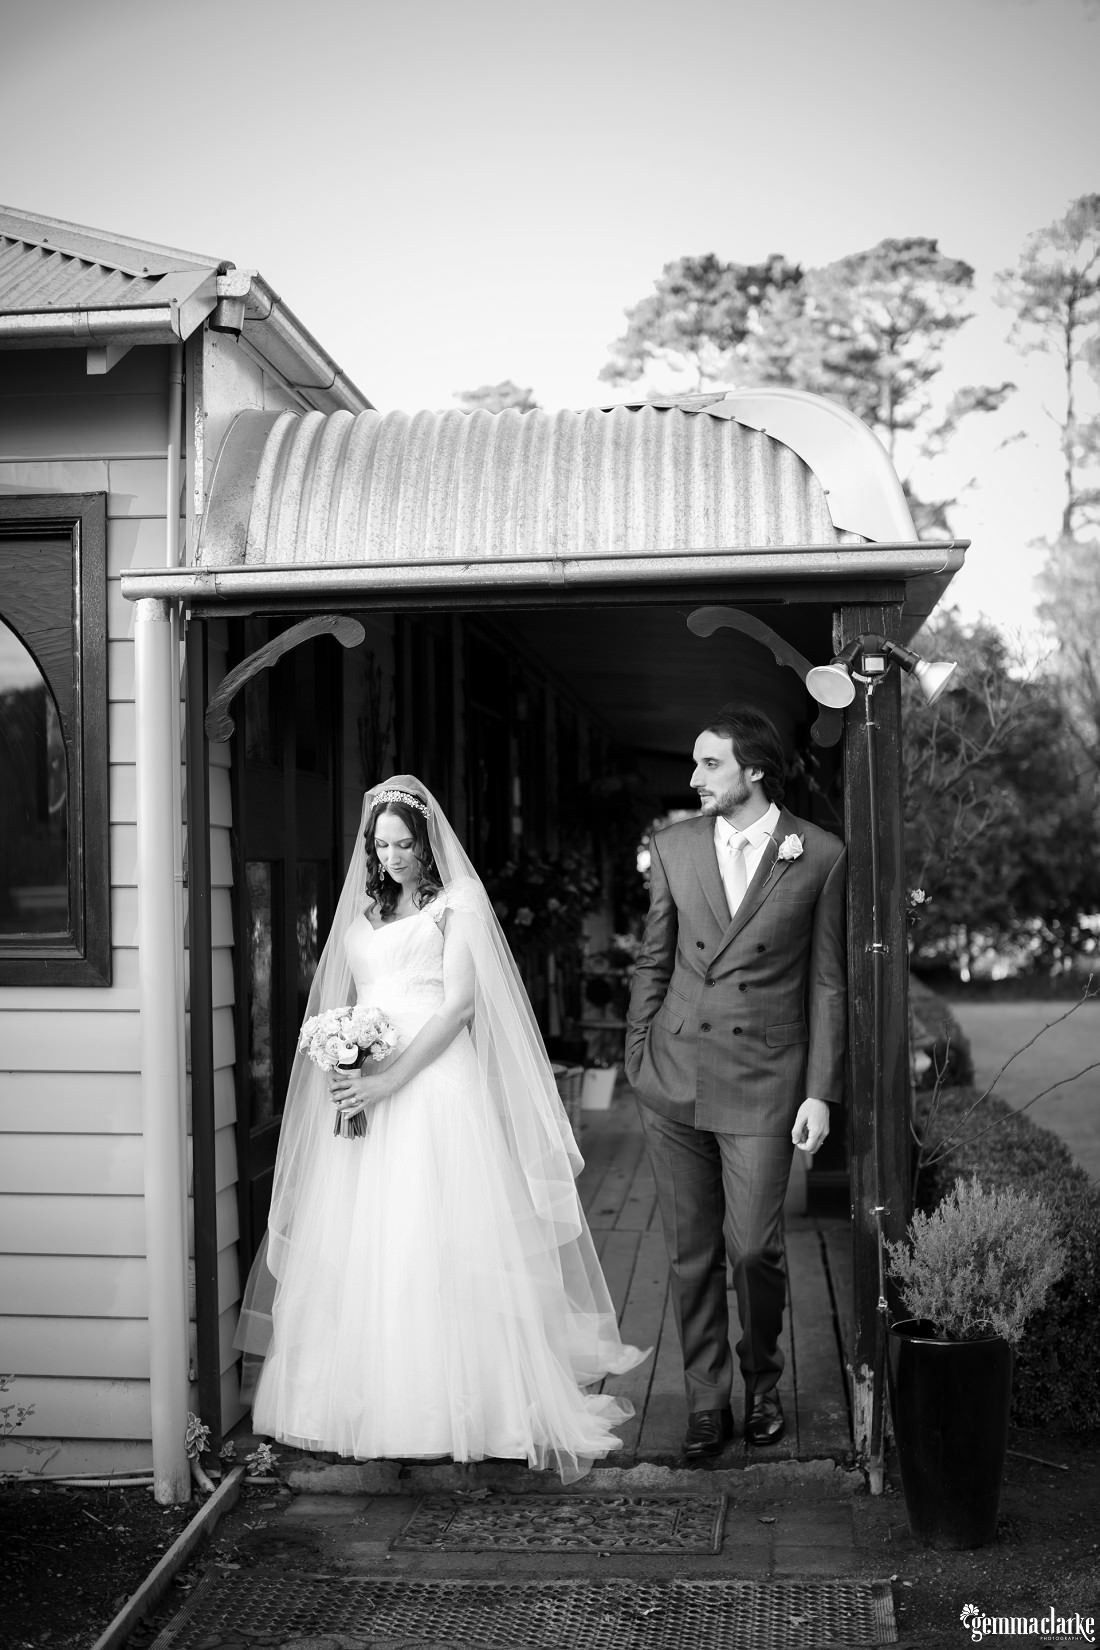 A bride and groom standing on the verandah of a country homestead - Sylvan Glen Winter Wedding